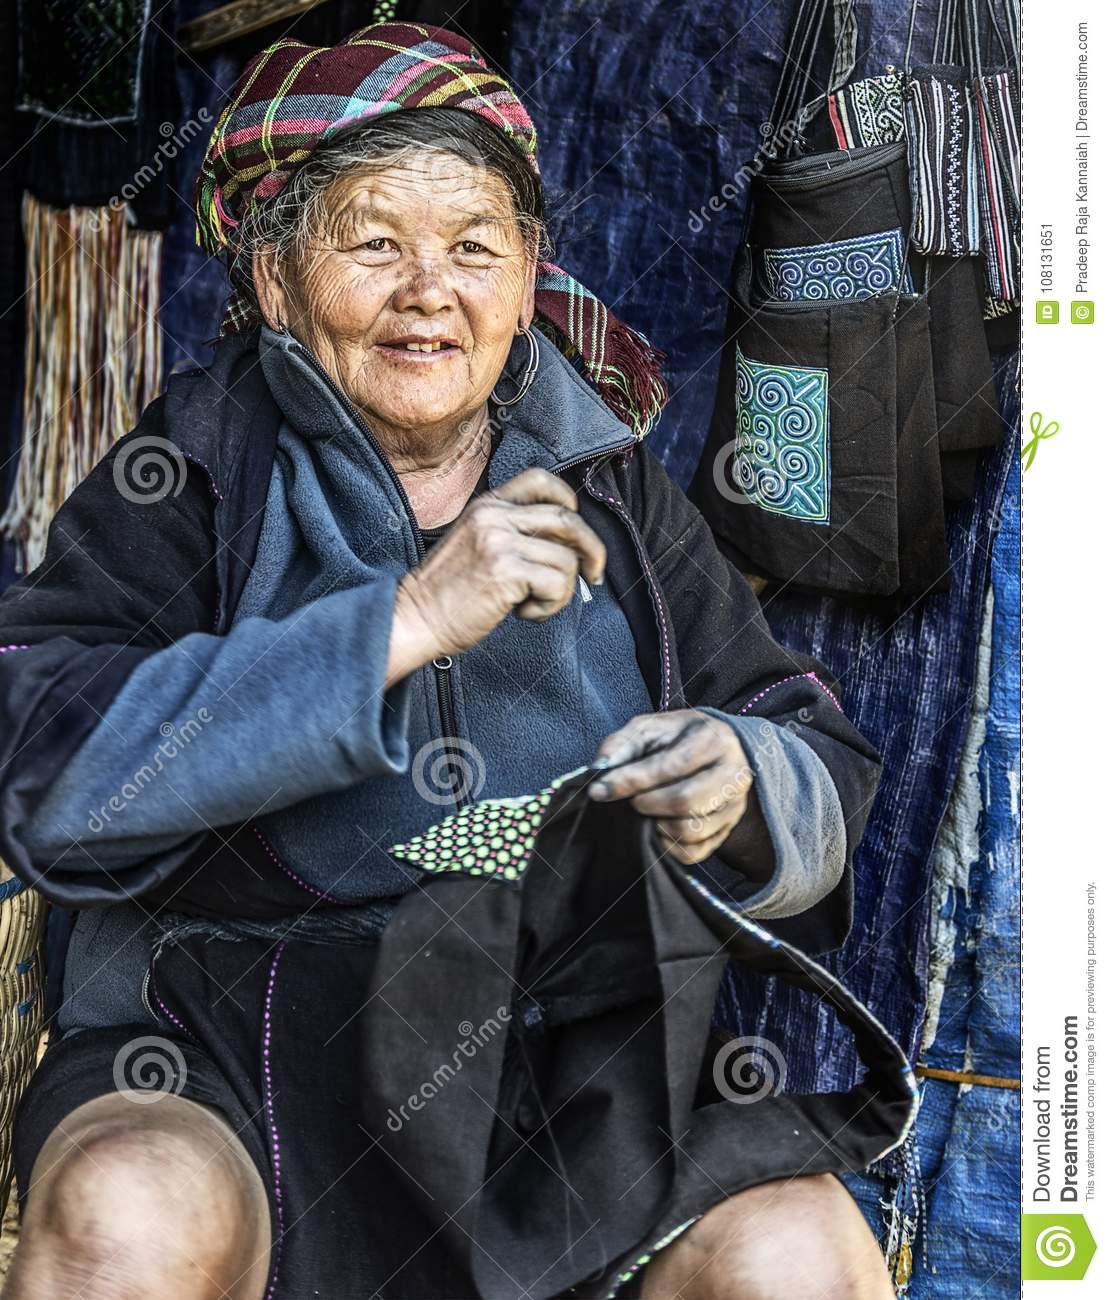 Hmong tribal old woman hand tailoring bags in her shop, Sapa, Vietnam